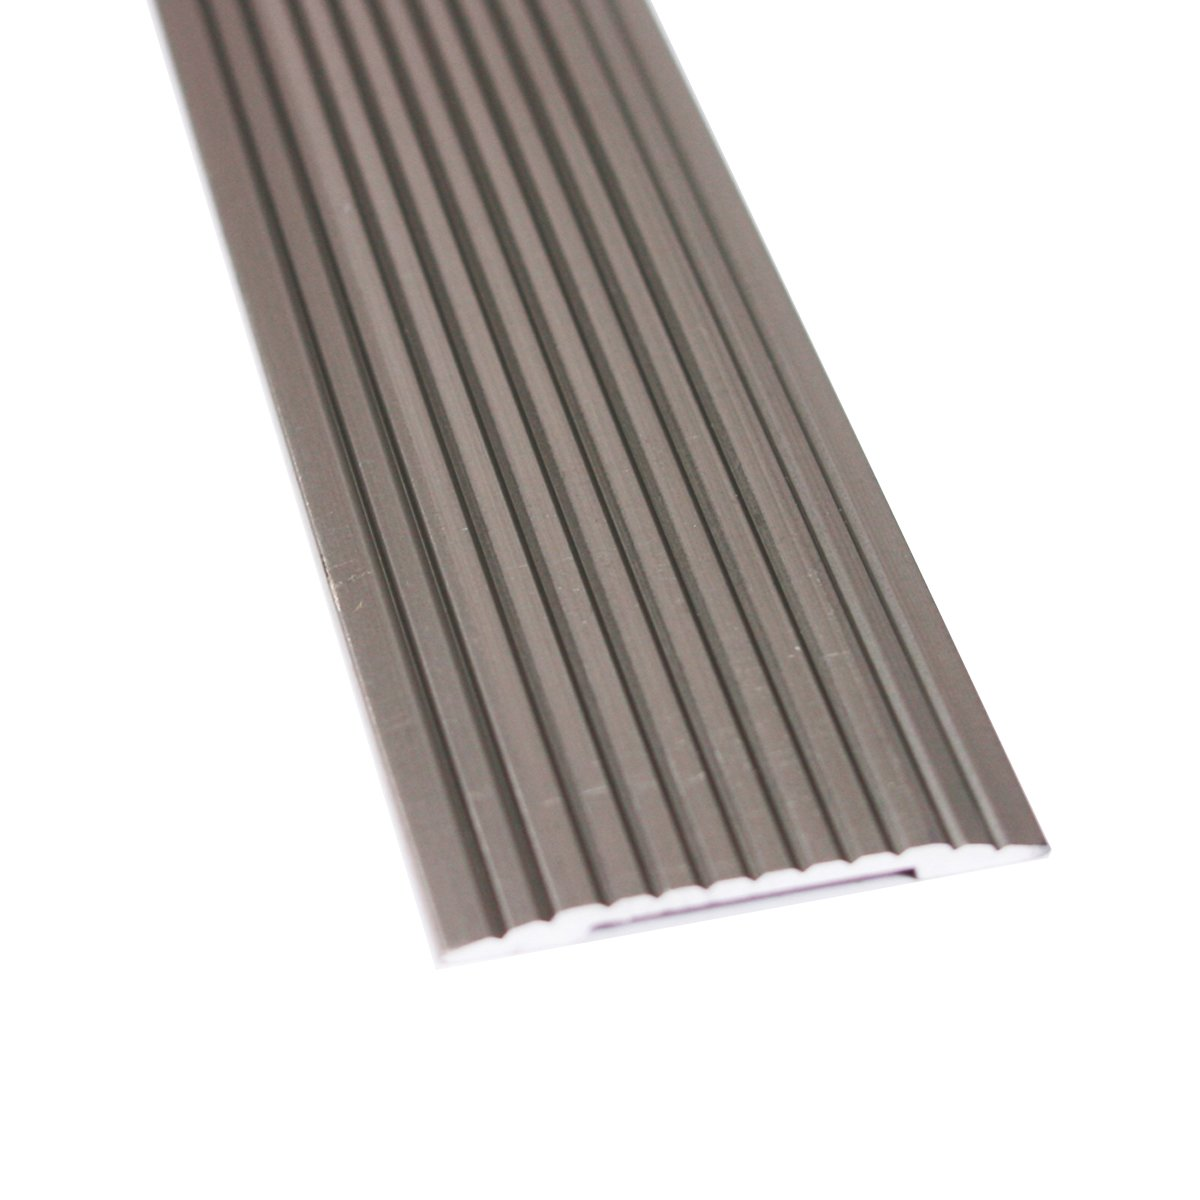 M-D Building Products 43872 M-D Wide Fluted Seam Binder, 1-1/4 in W X 36 in L X 0.1 in H, Pewter